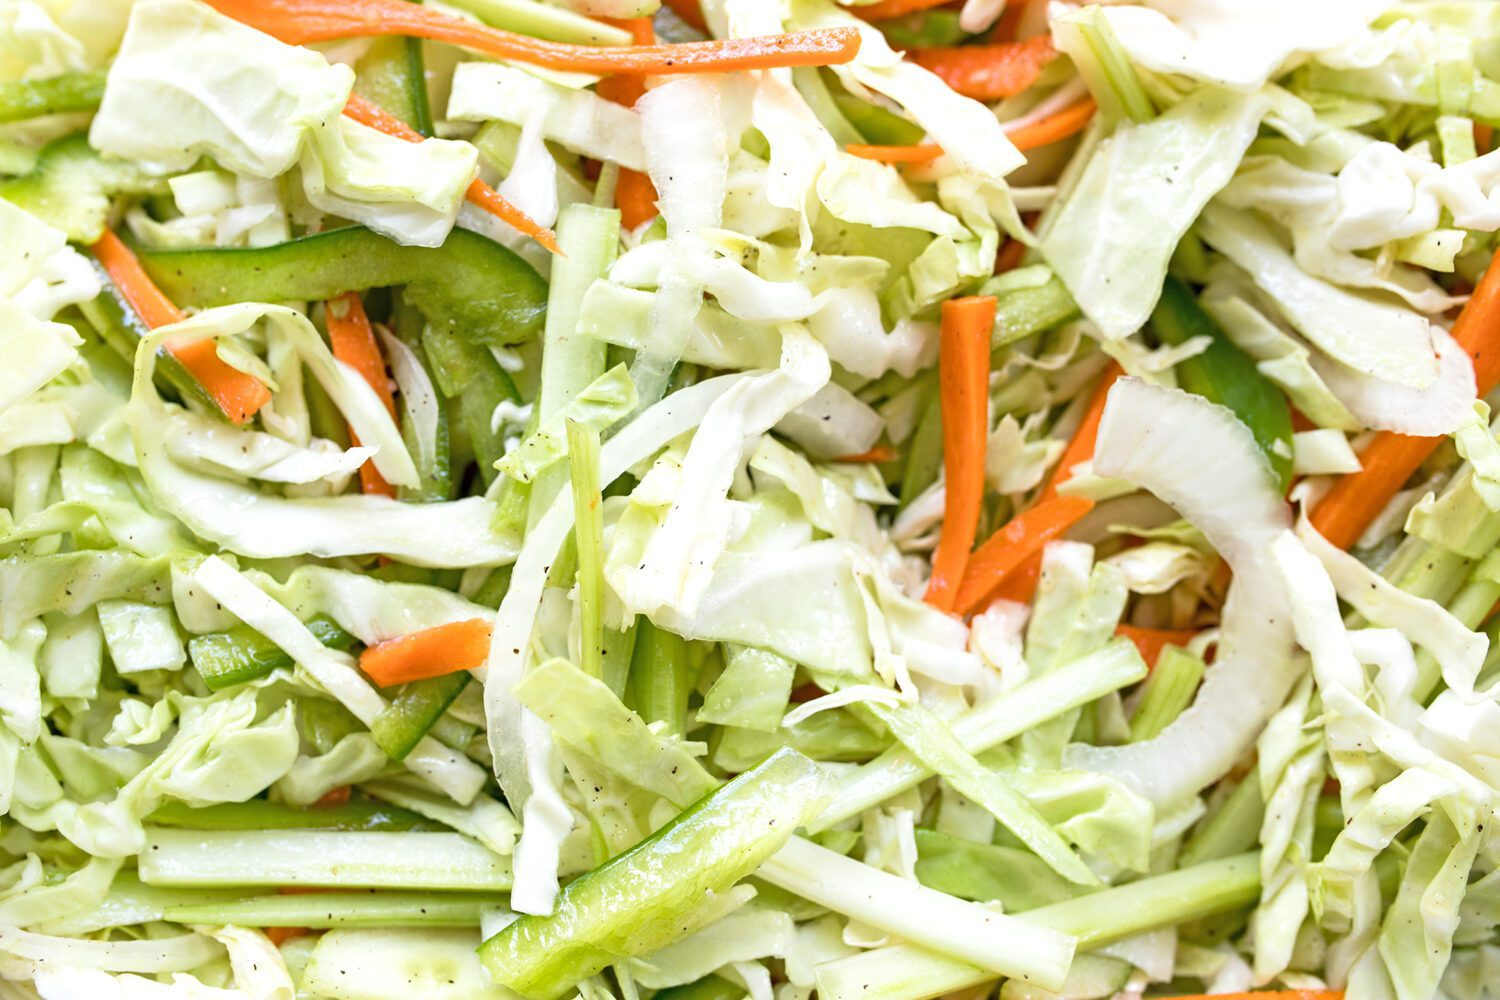 sliced cabbage, onion, carrot, celery, green pepper and cucumbers